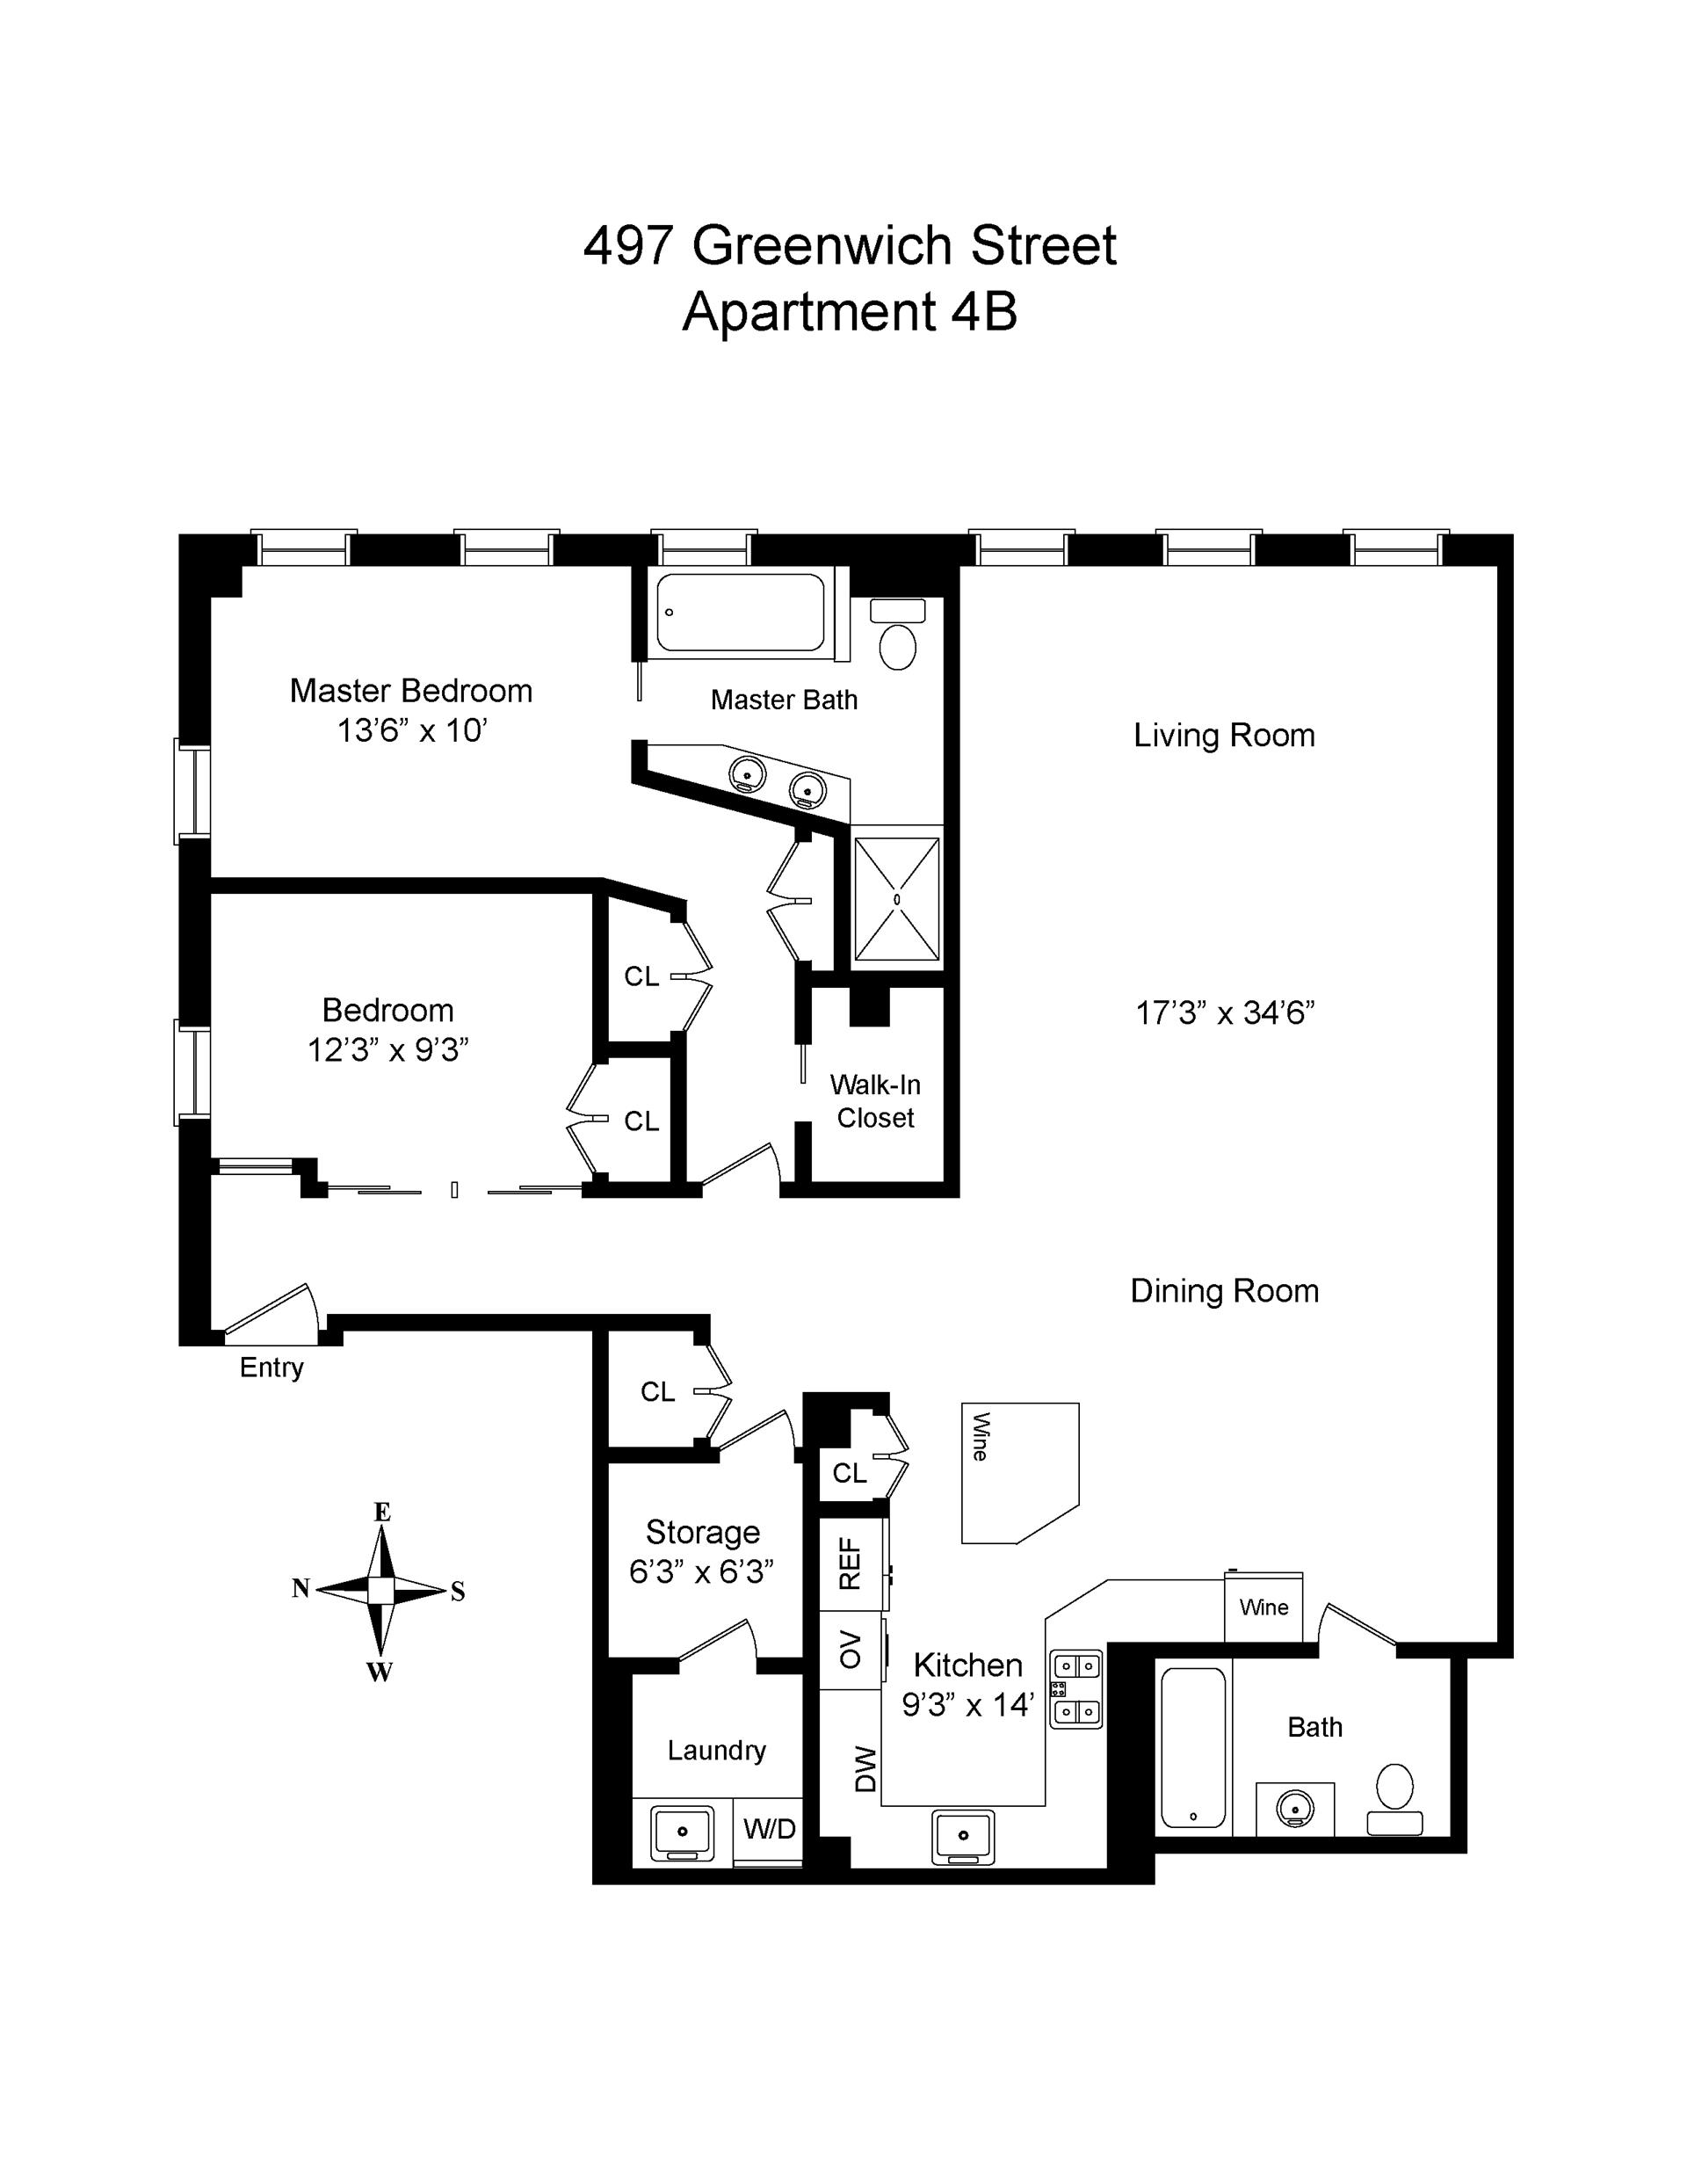 Floor plan of Greenwich Street Project, 497 Greenwich St, 4B - SoHo - Nolita, New York